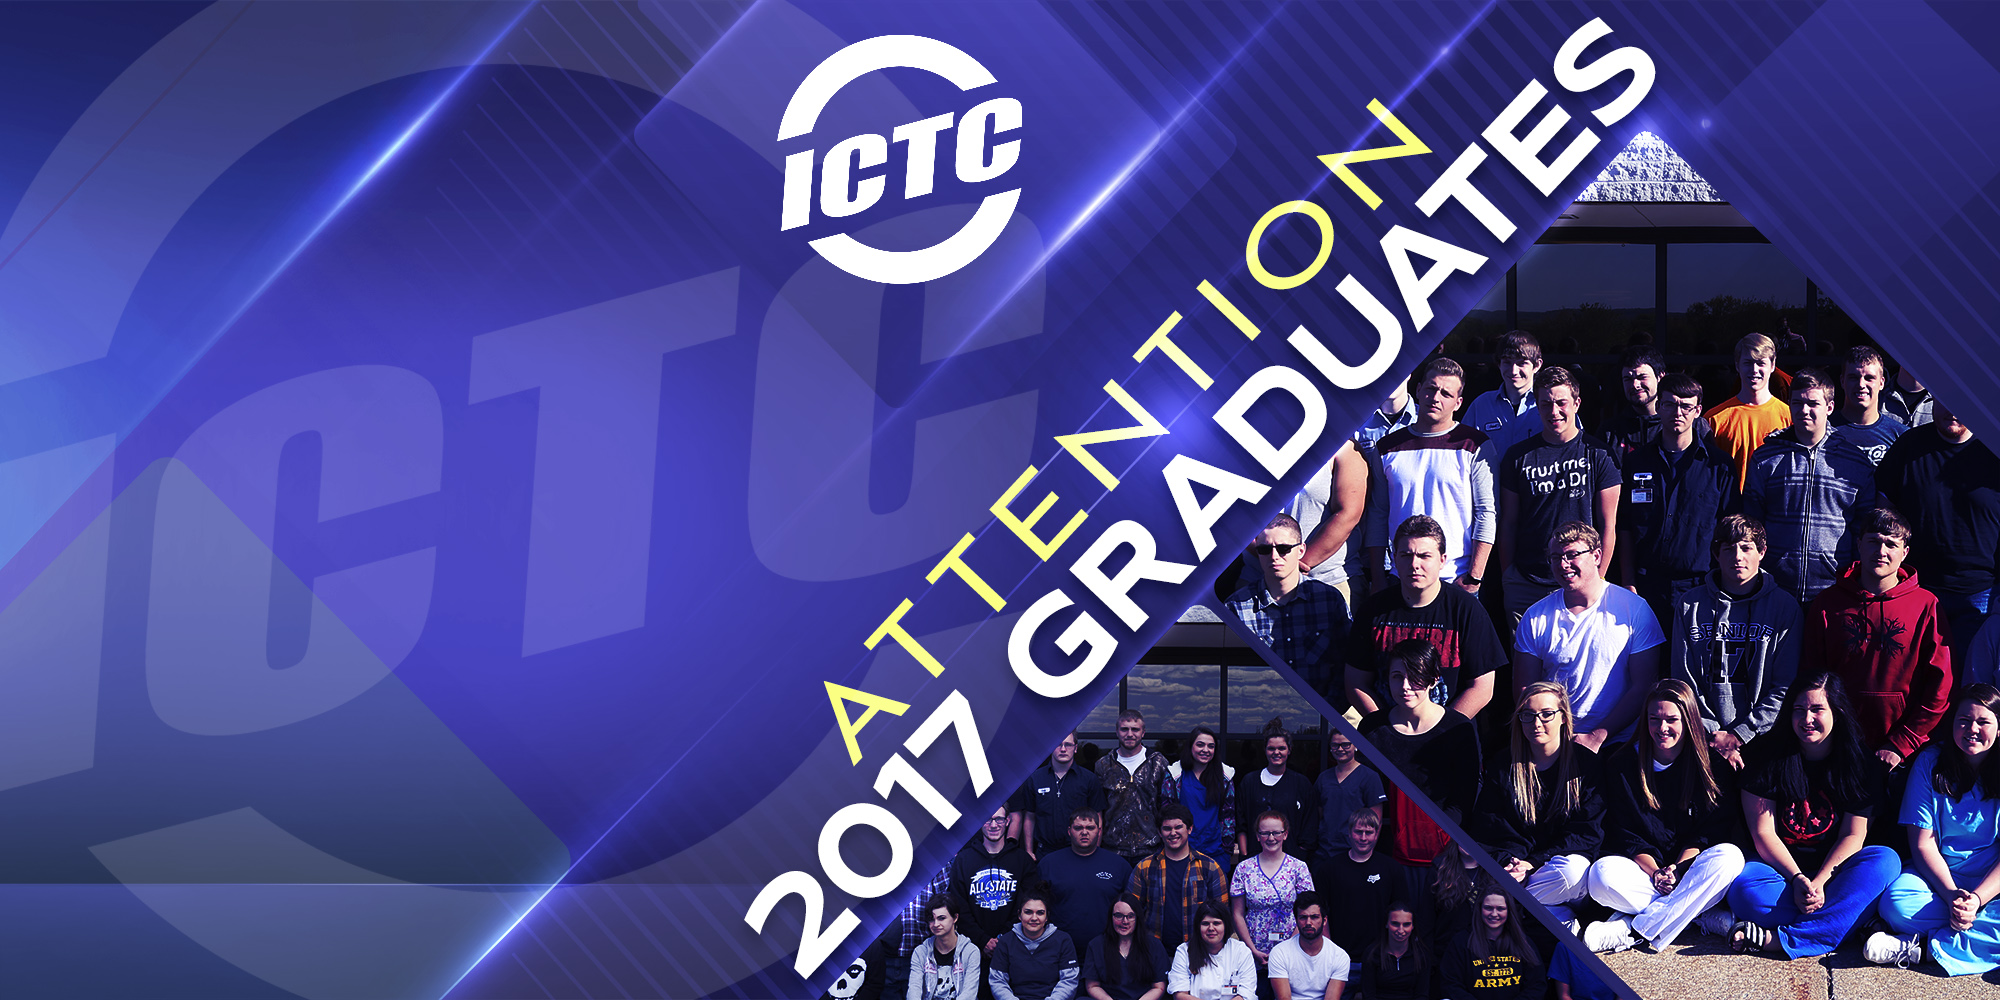 Attention ICTC 2017 Graduates!